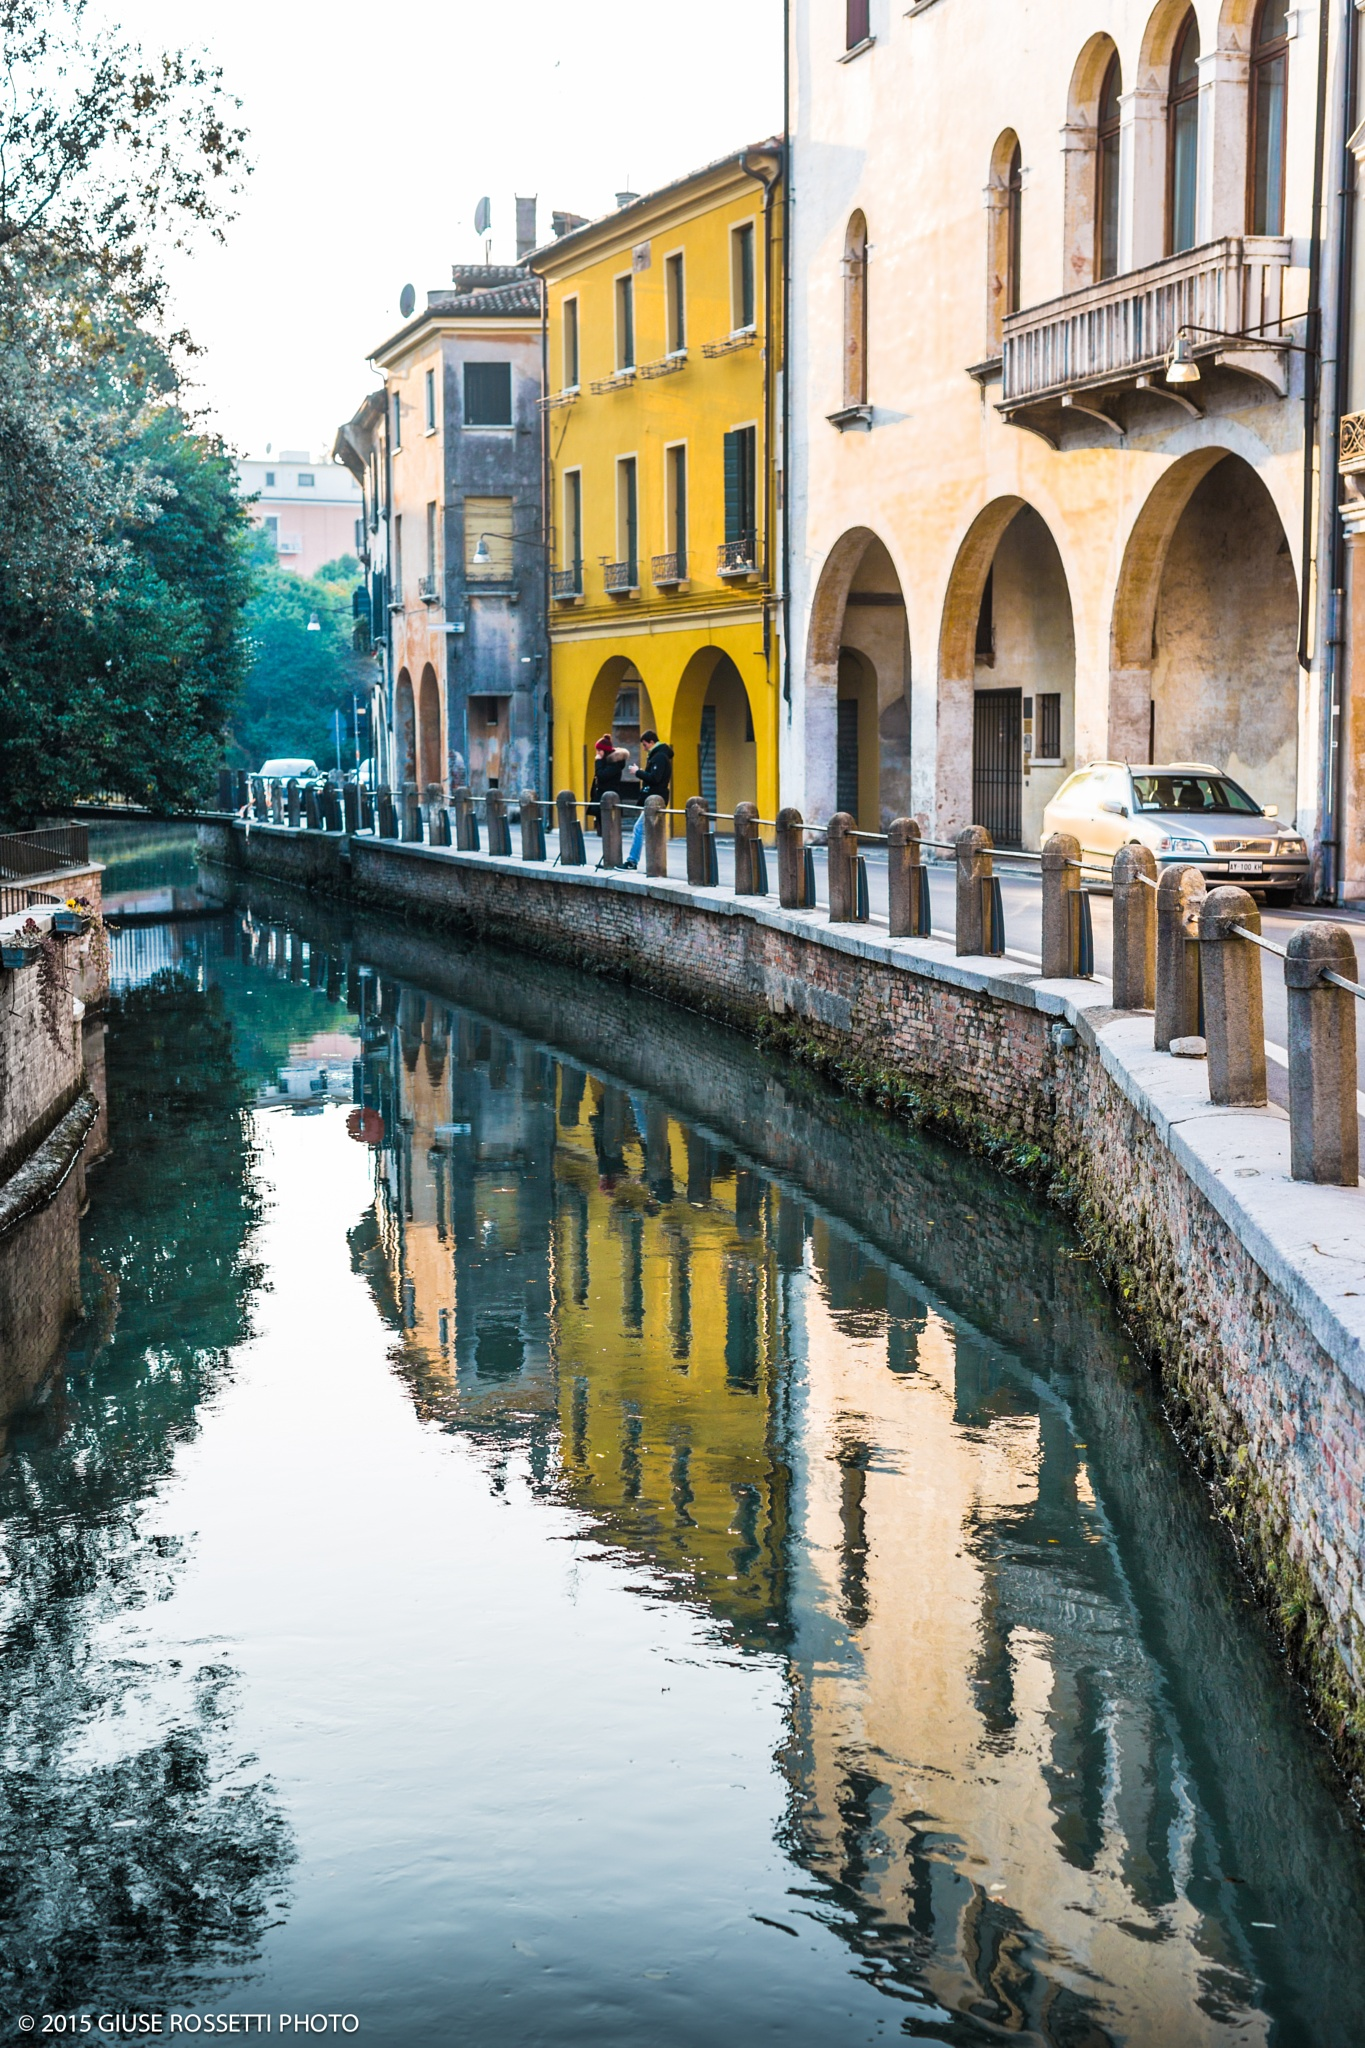 Treviso style by Giuse Rossetti